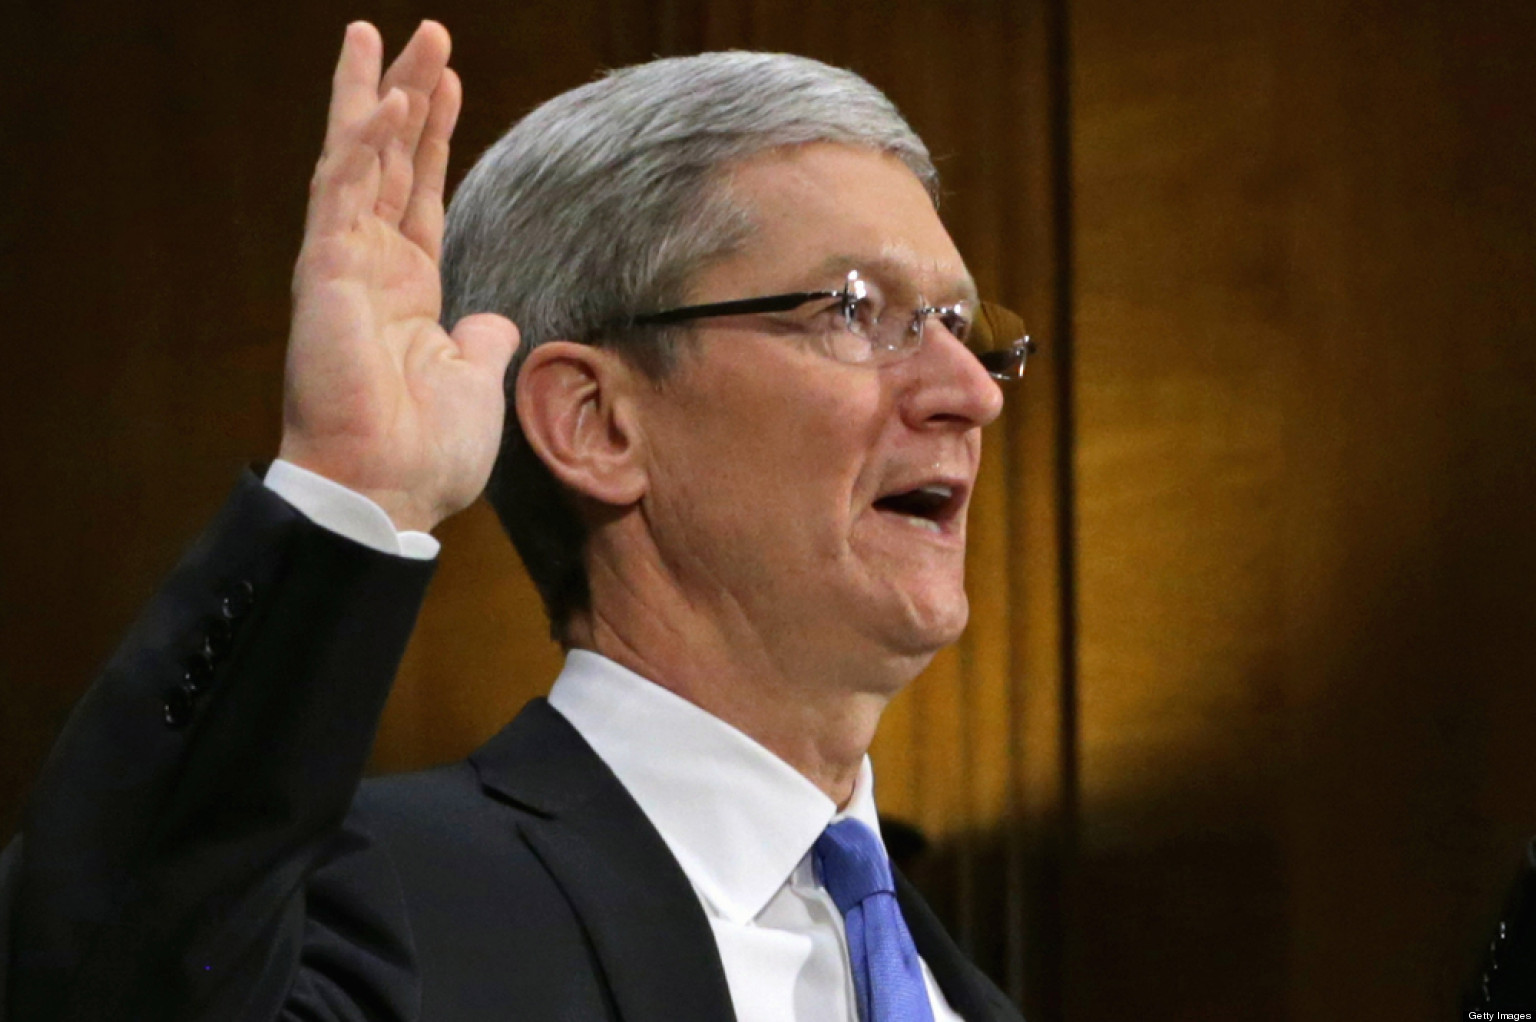 Apple CEO: 'We Pay All The Taxes We Owe'